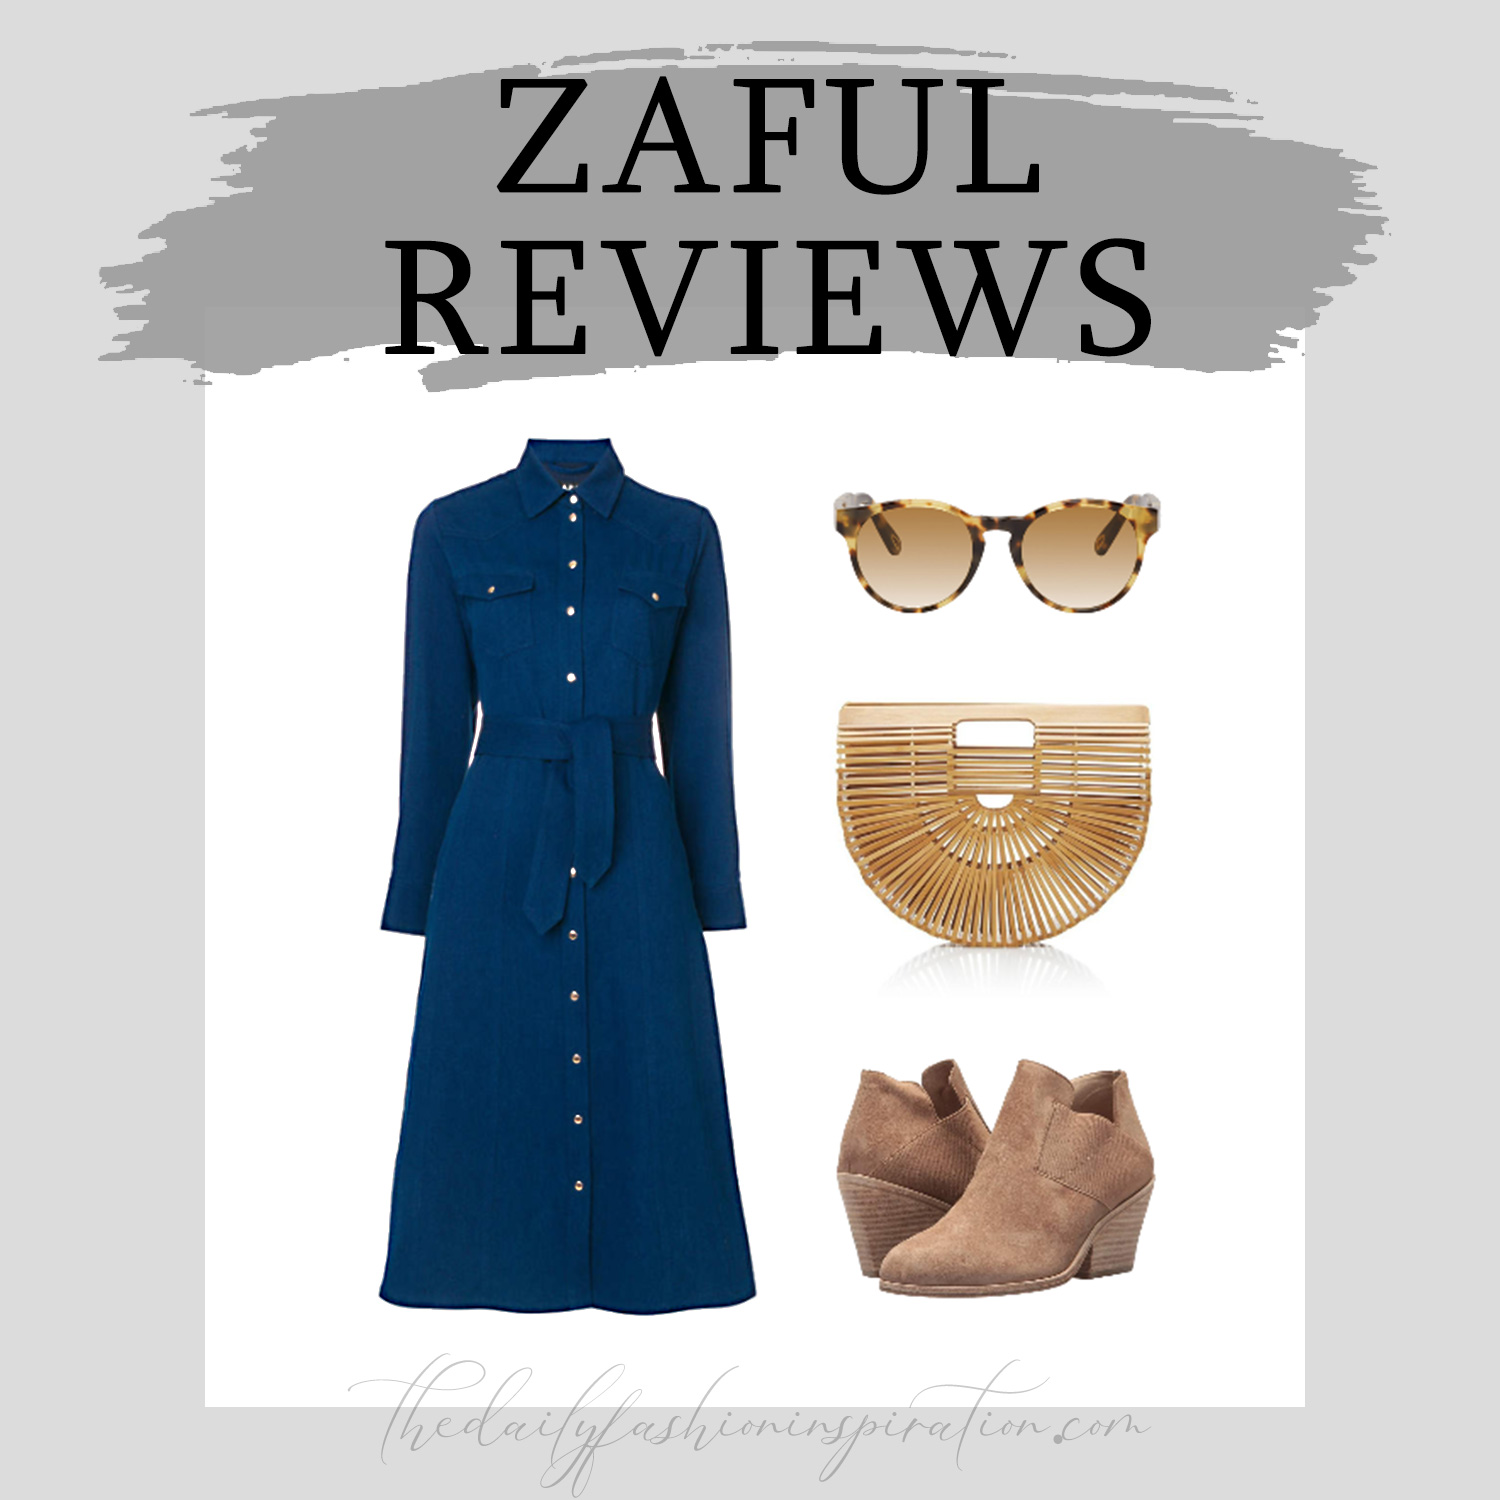 honest Zaful review